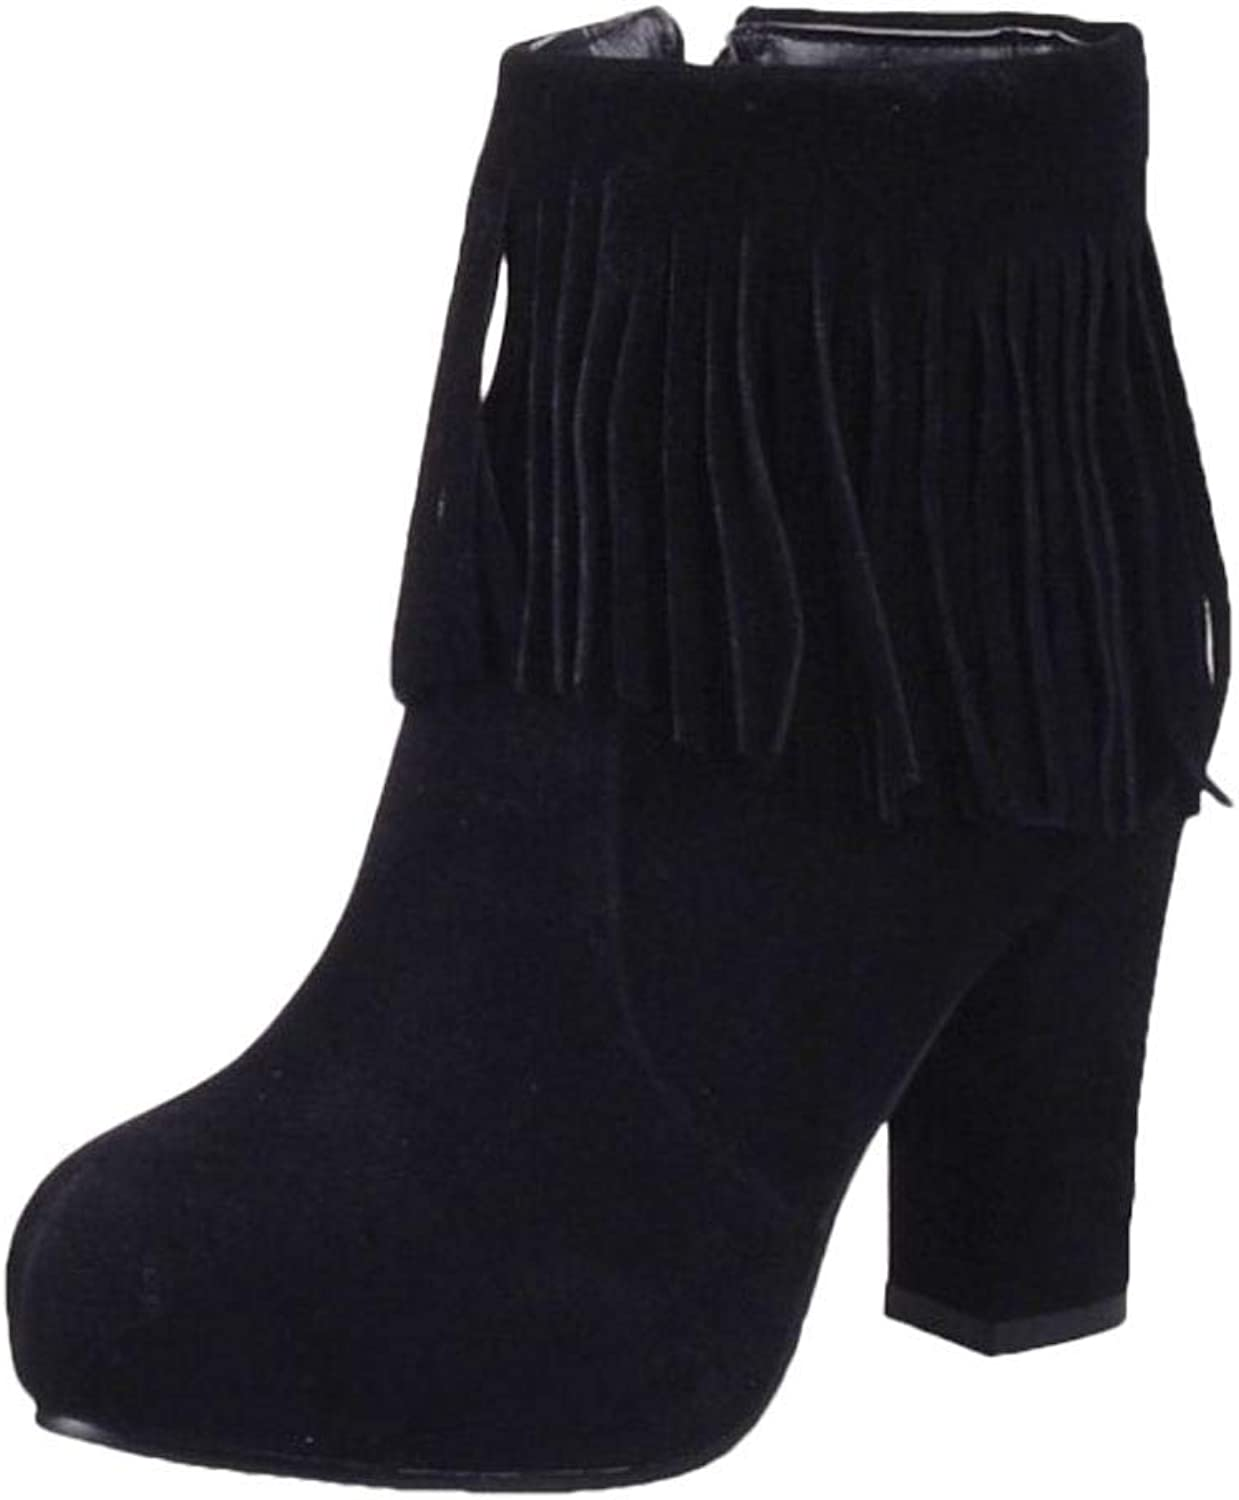 Wallhewb Women's Chunky Fringed Boot Girls Round Toe Comfortable Dress Ankle Boots Micropile Elegant with Heels Pants Rubber Sole Fashion Skinny Zipper Black 5 M US Fringed Boot